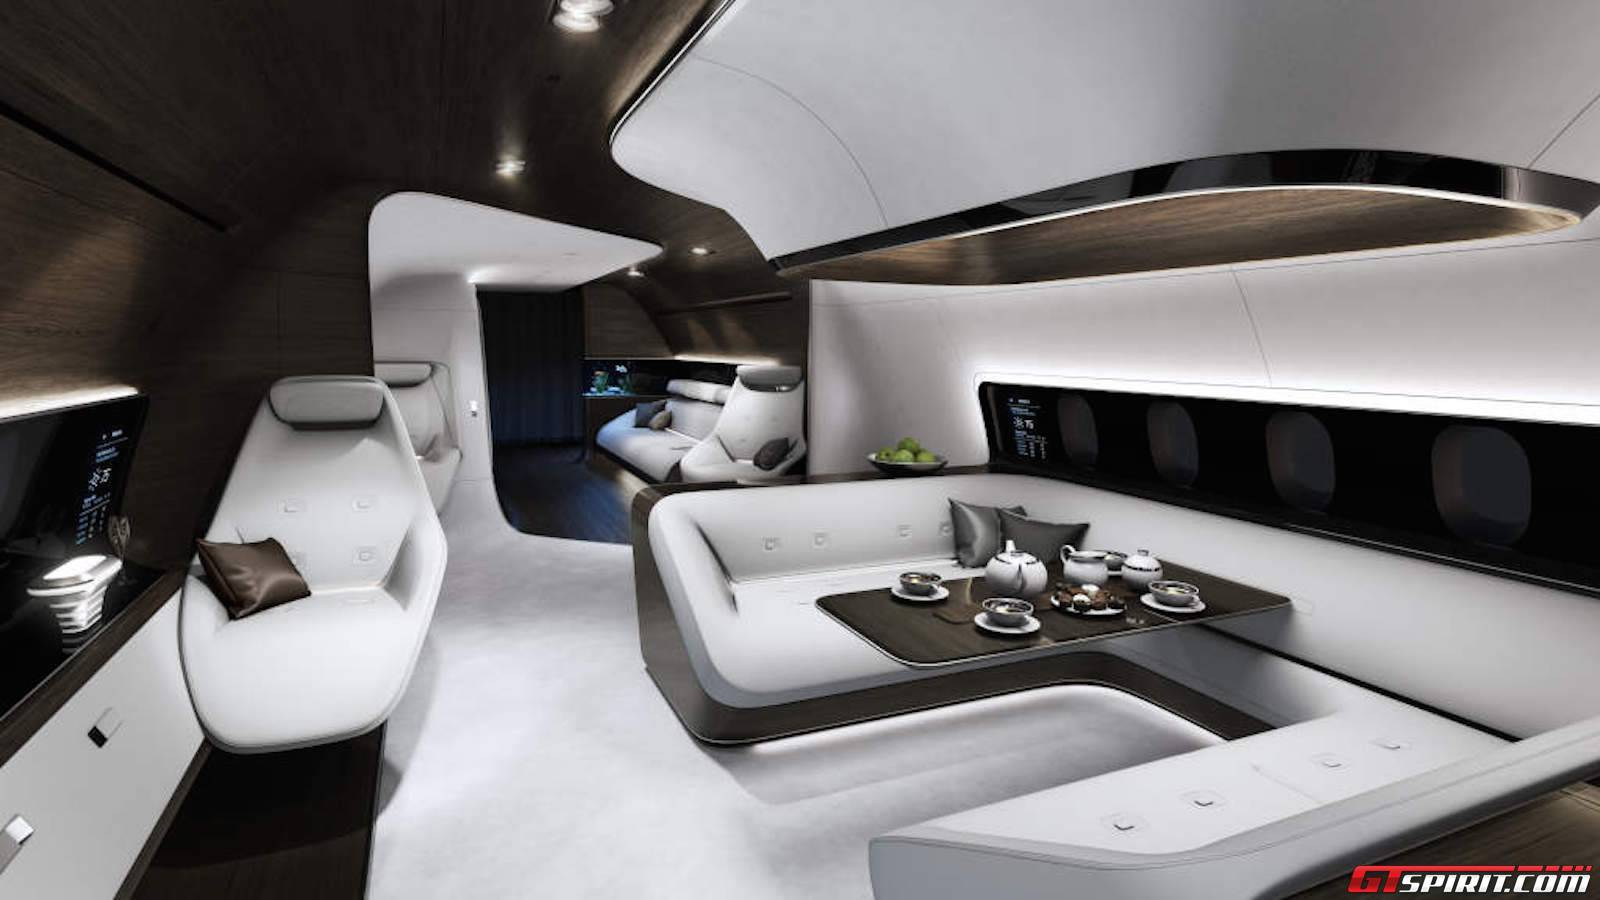 Mercedes Benz Design Airline Cabin Lufthansa Technik For Boeing 737.  Mercedes Benz Announced Their First Luxurious Private Jet Interior ...